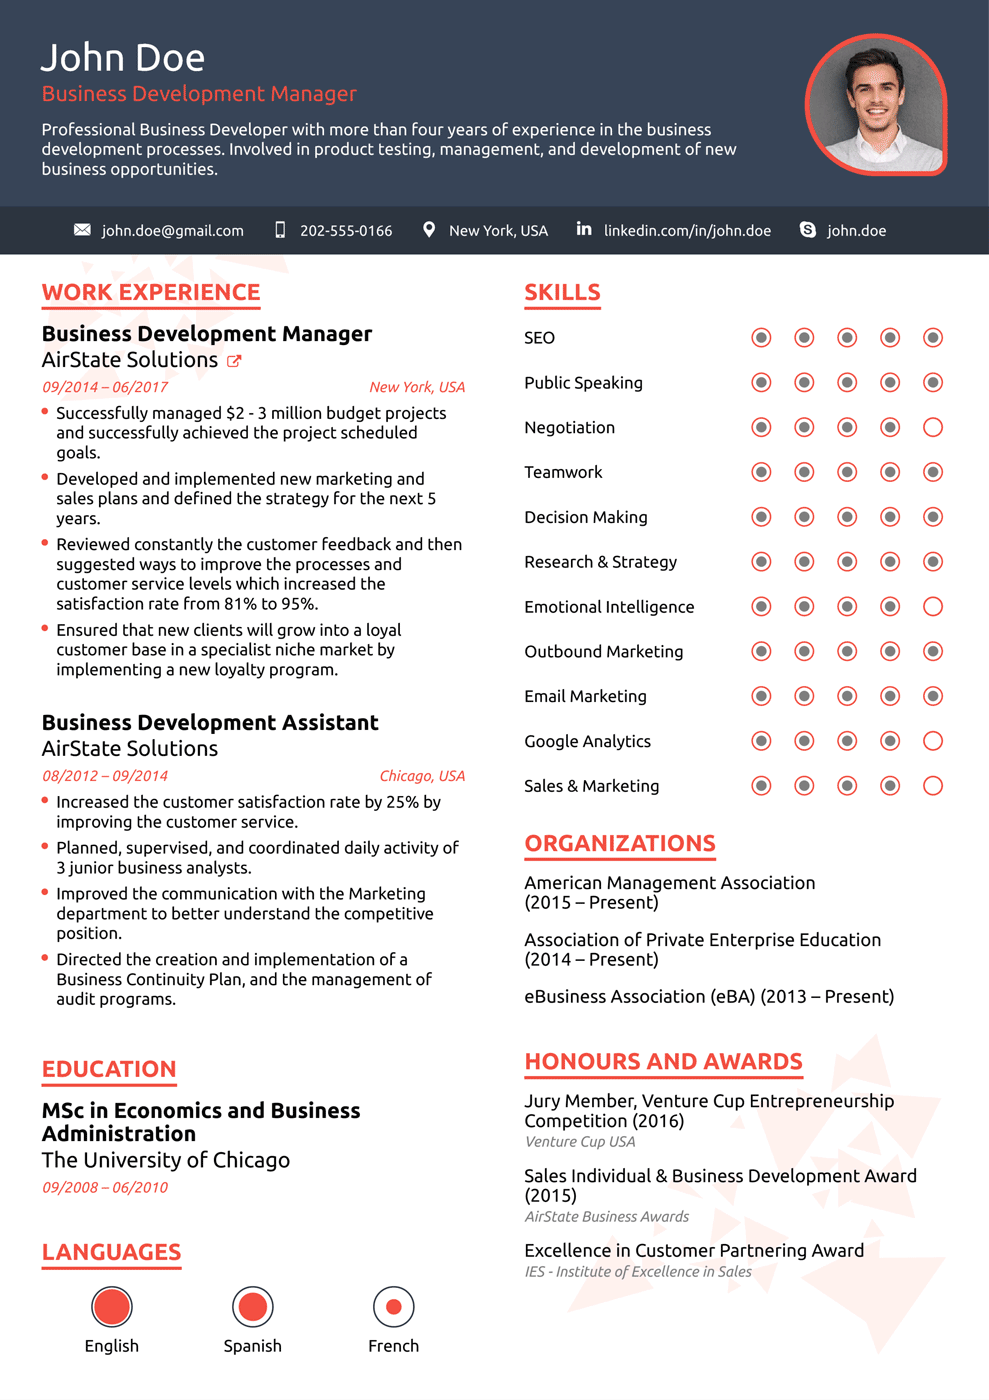 Resume Teplate | 8 Best Online Resume Templates Of 2019 Download Customize